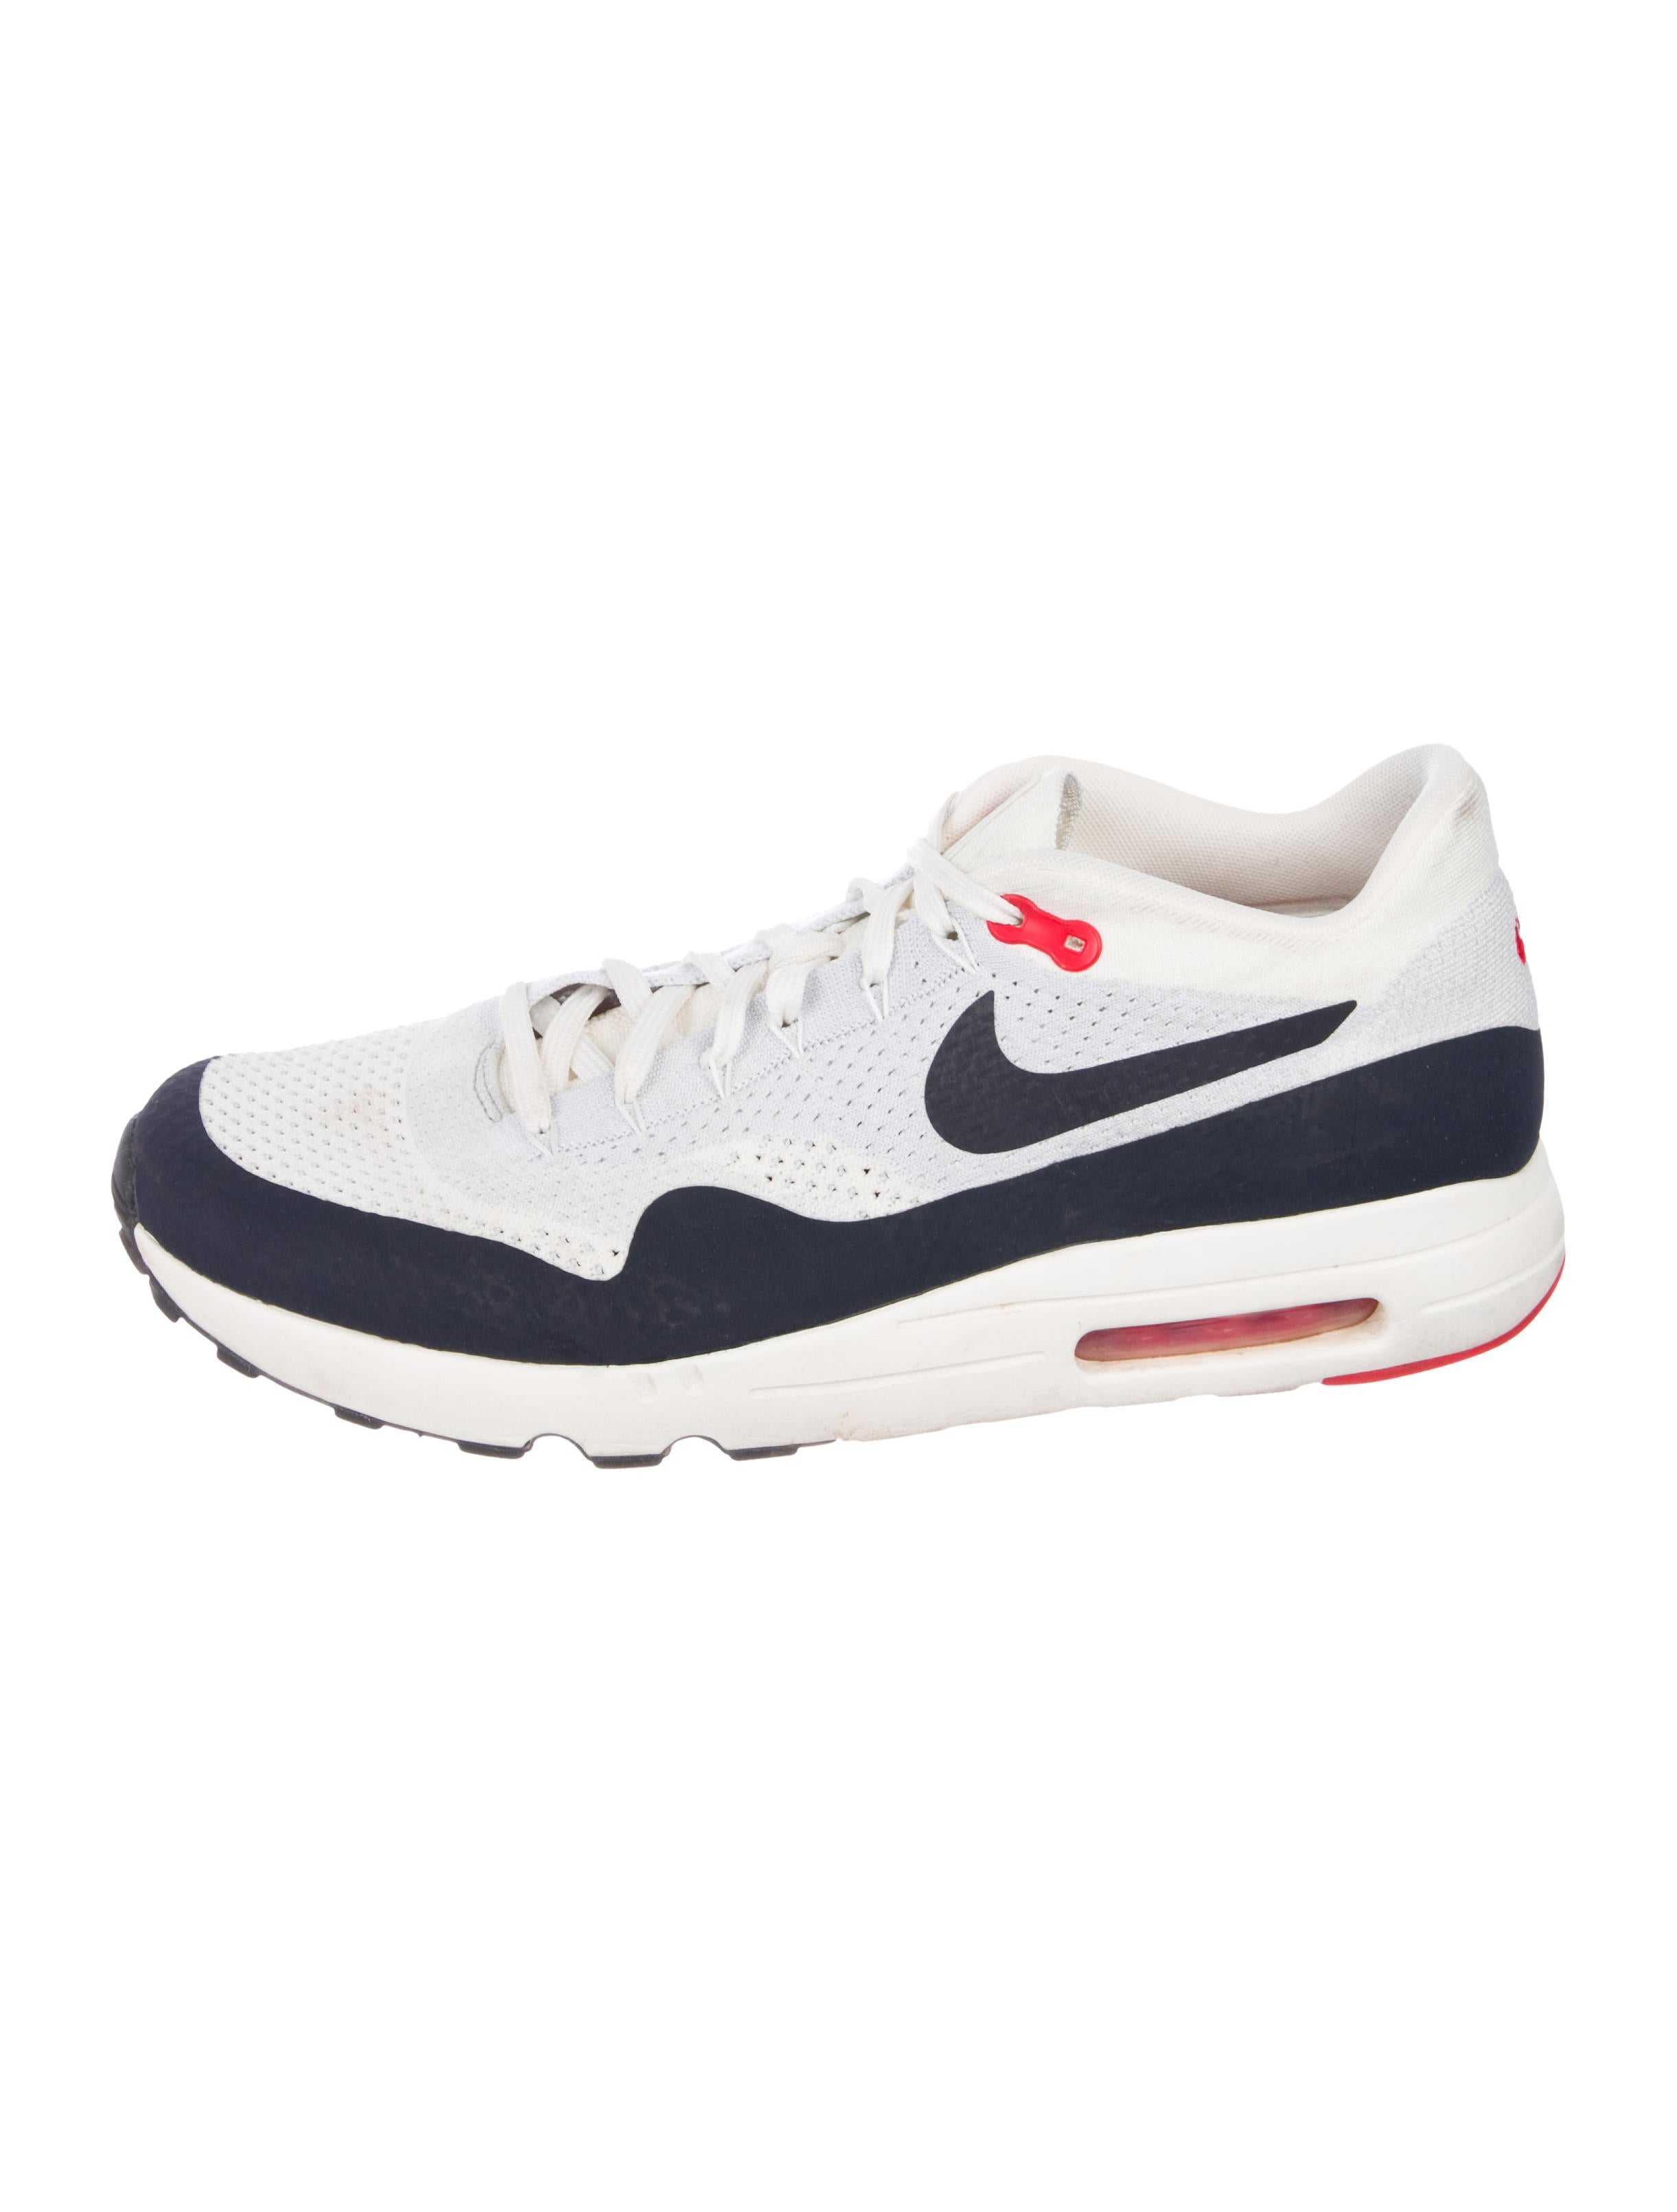 Nike Air Max 1 Ultra 2.0 Flyknit USA Sneakers - Shoes - WU240219 ...